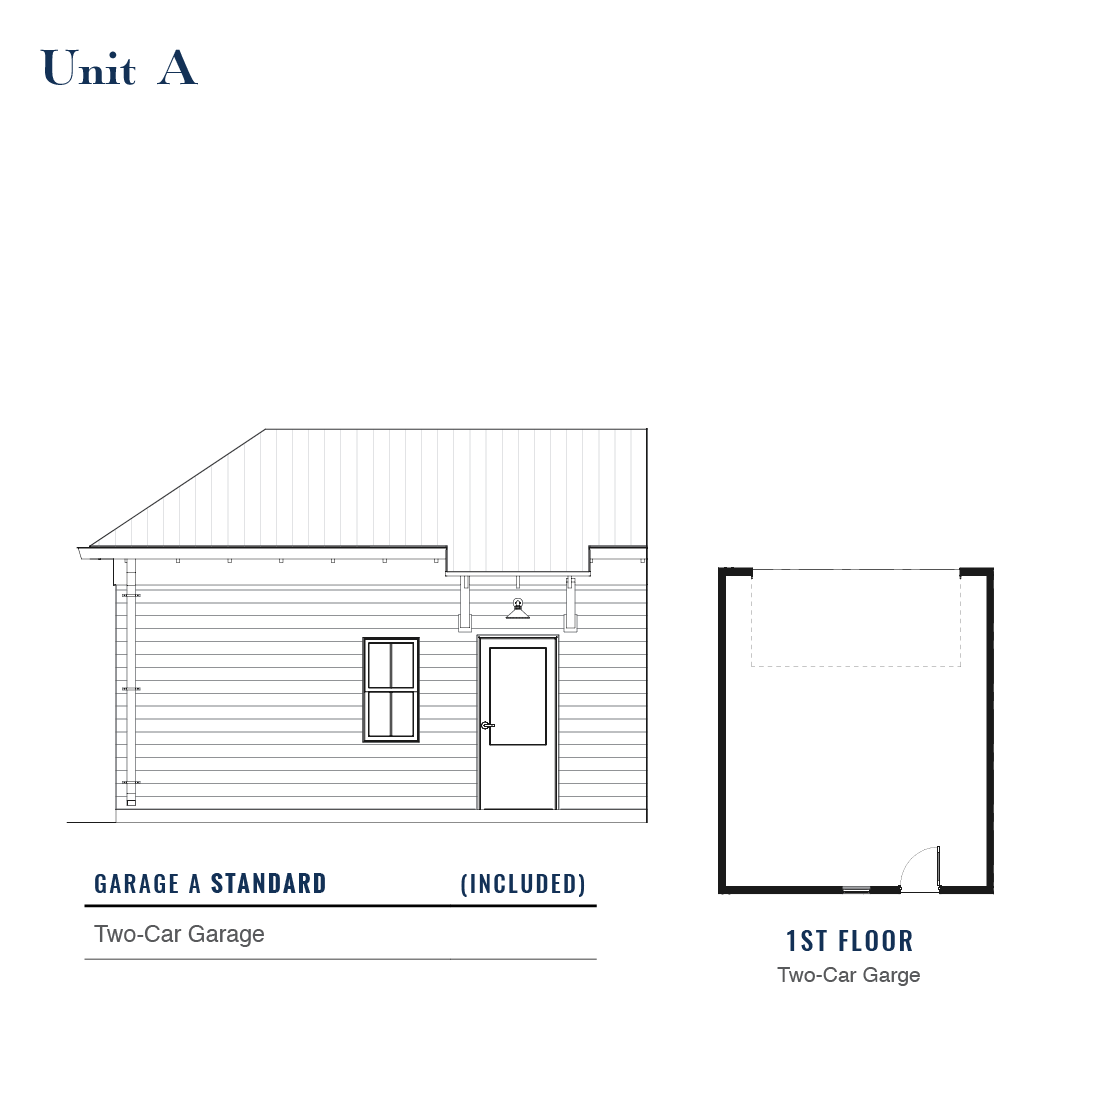 Unit A Standard Garage | East Wilbur LiveWorks, Downtown Lake Mary